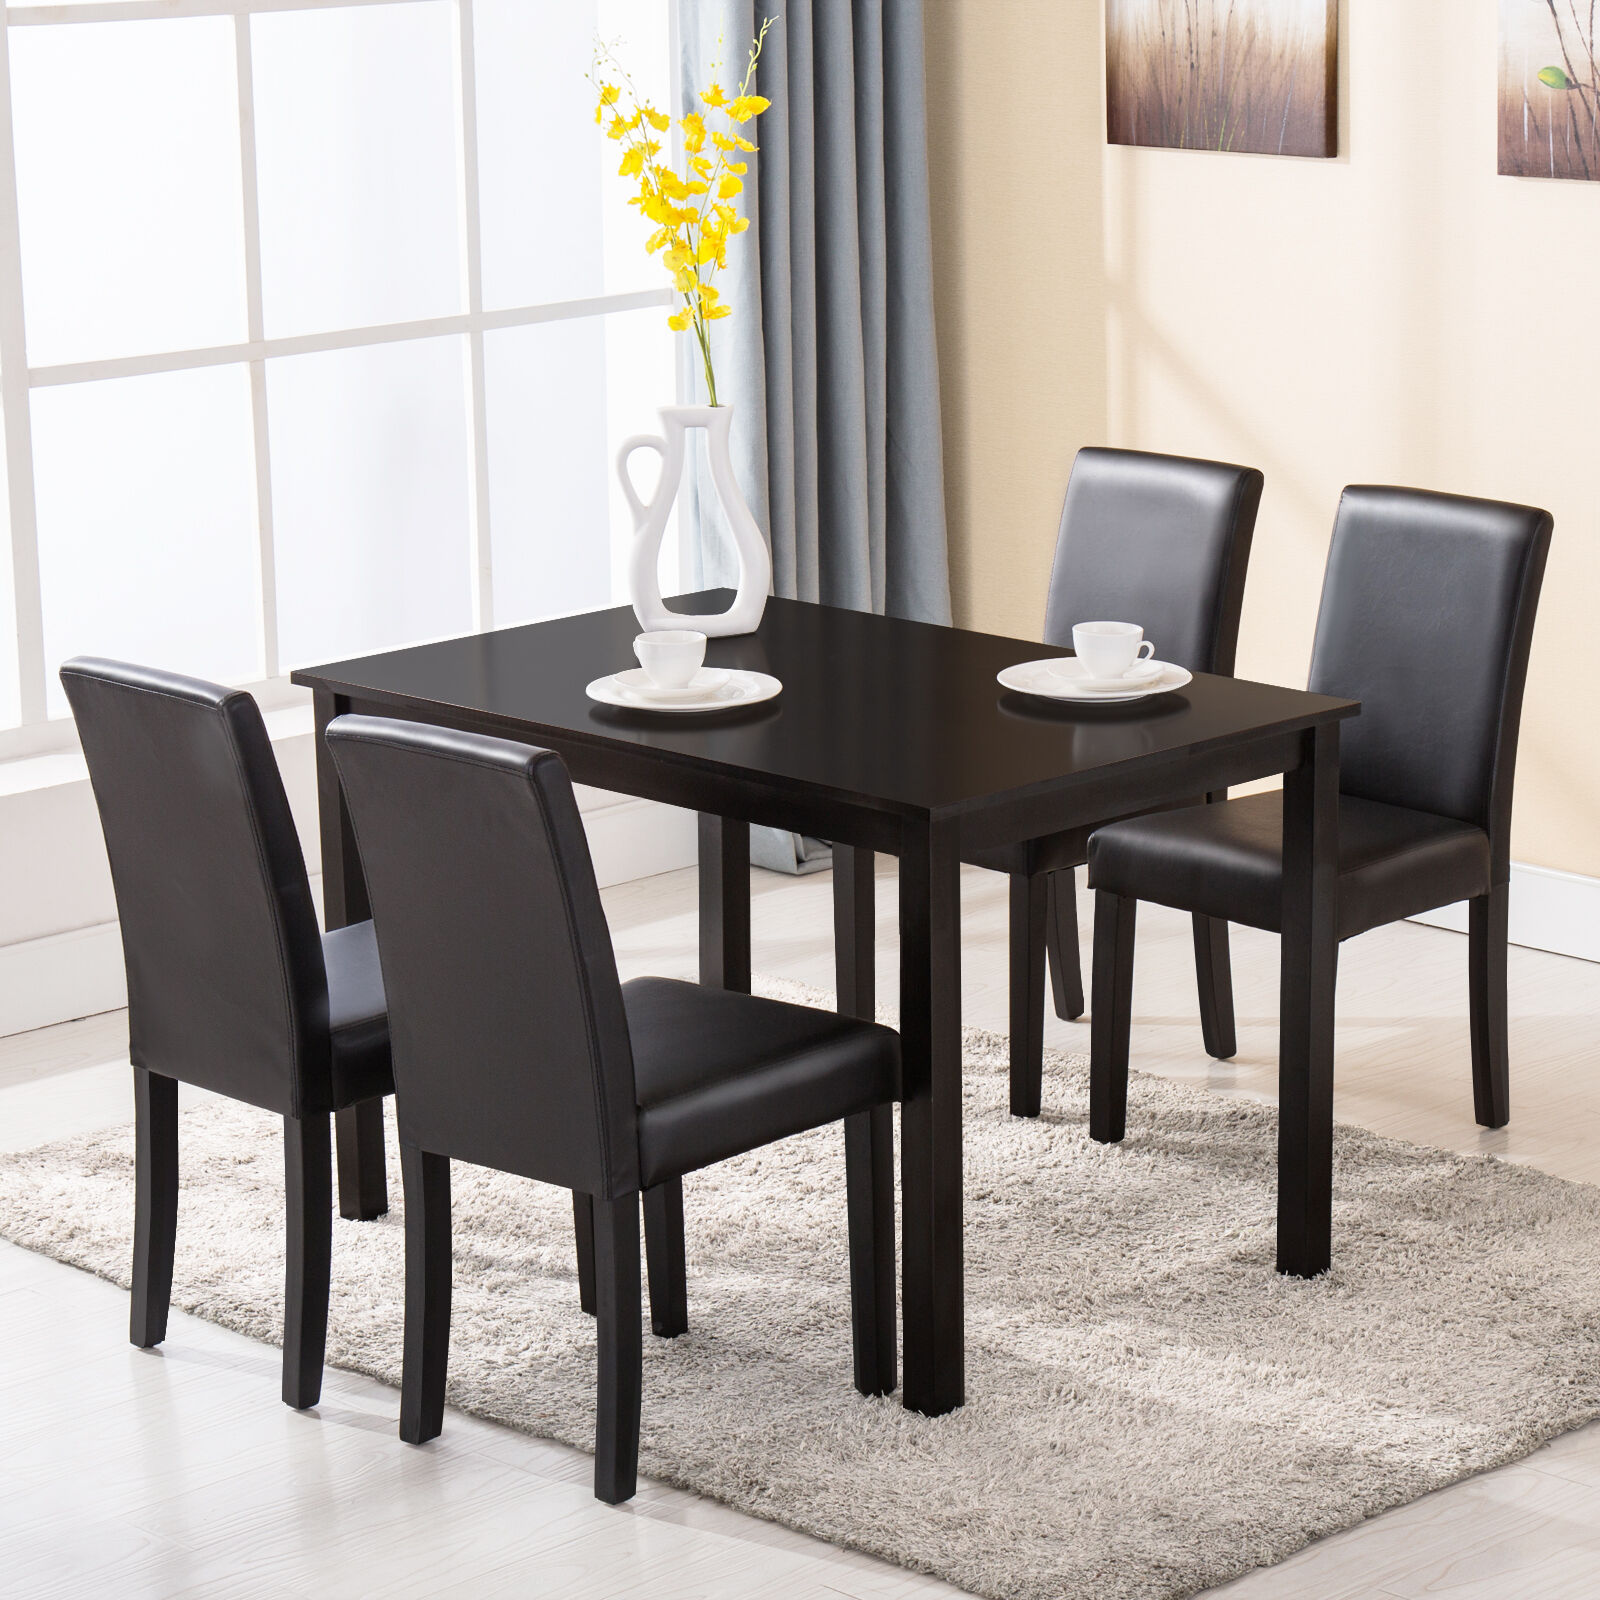 5 piece dining table set 4 chairs wood kitchen dinette for Four chair dining table set